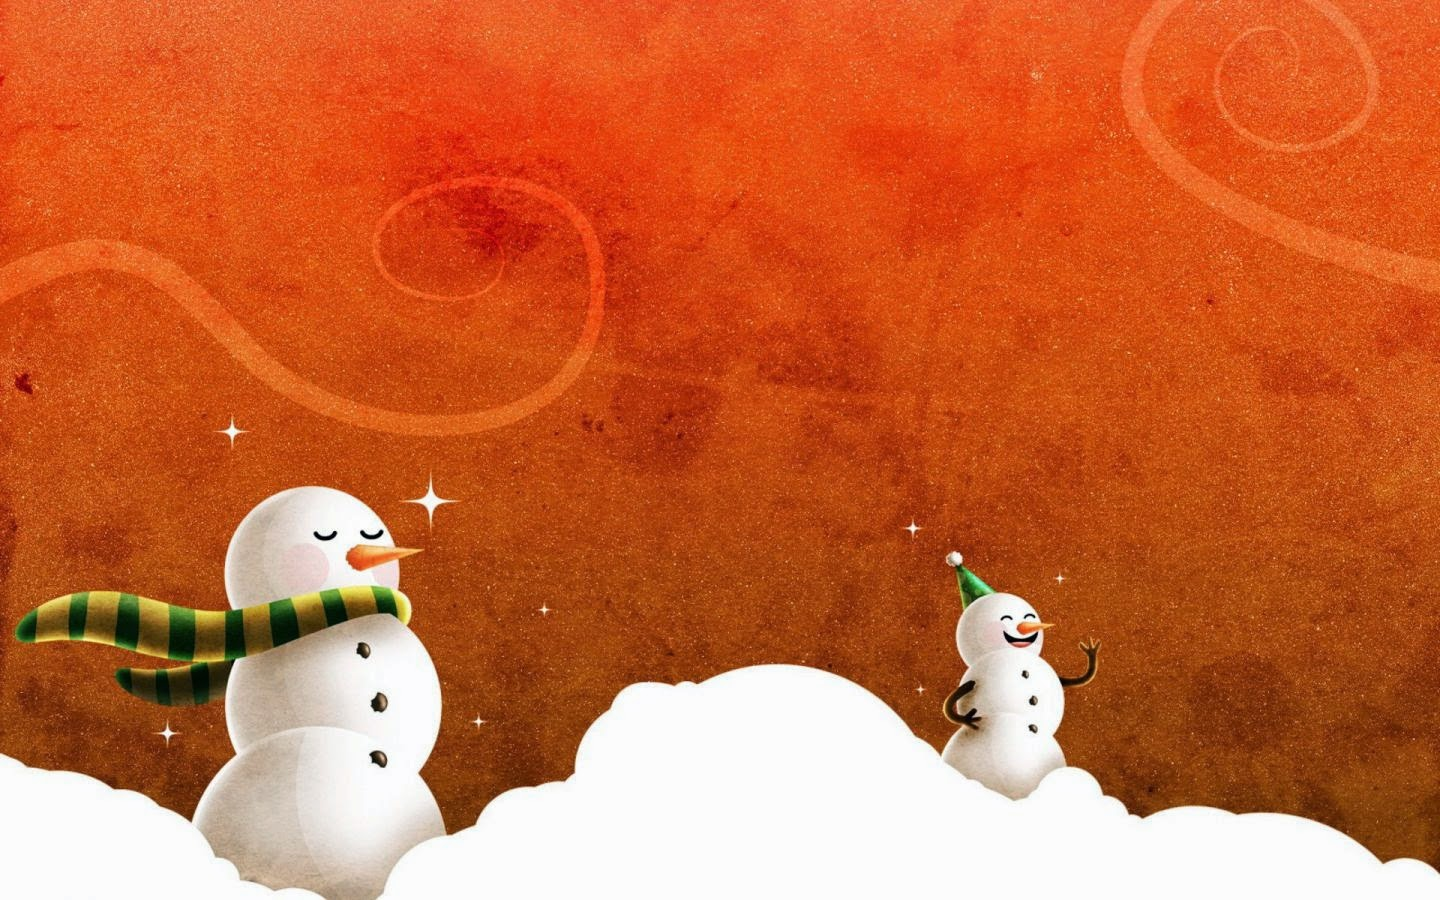 Christmas-snowman-cartoon-color-drawings-template-image-for-kids-children.jpg